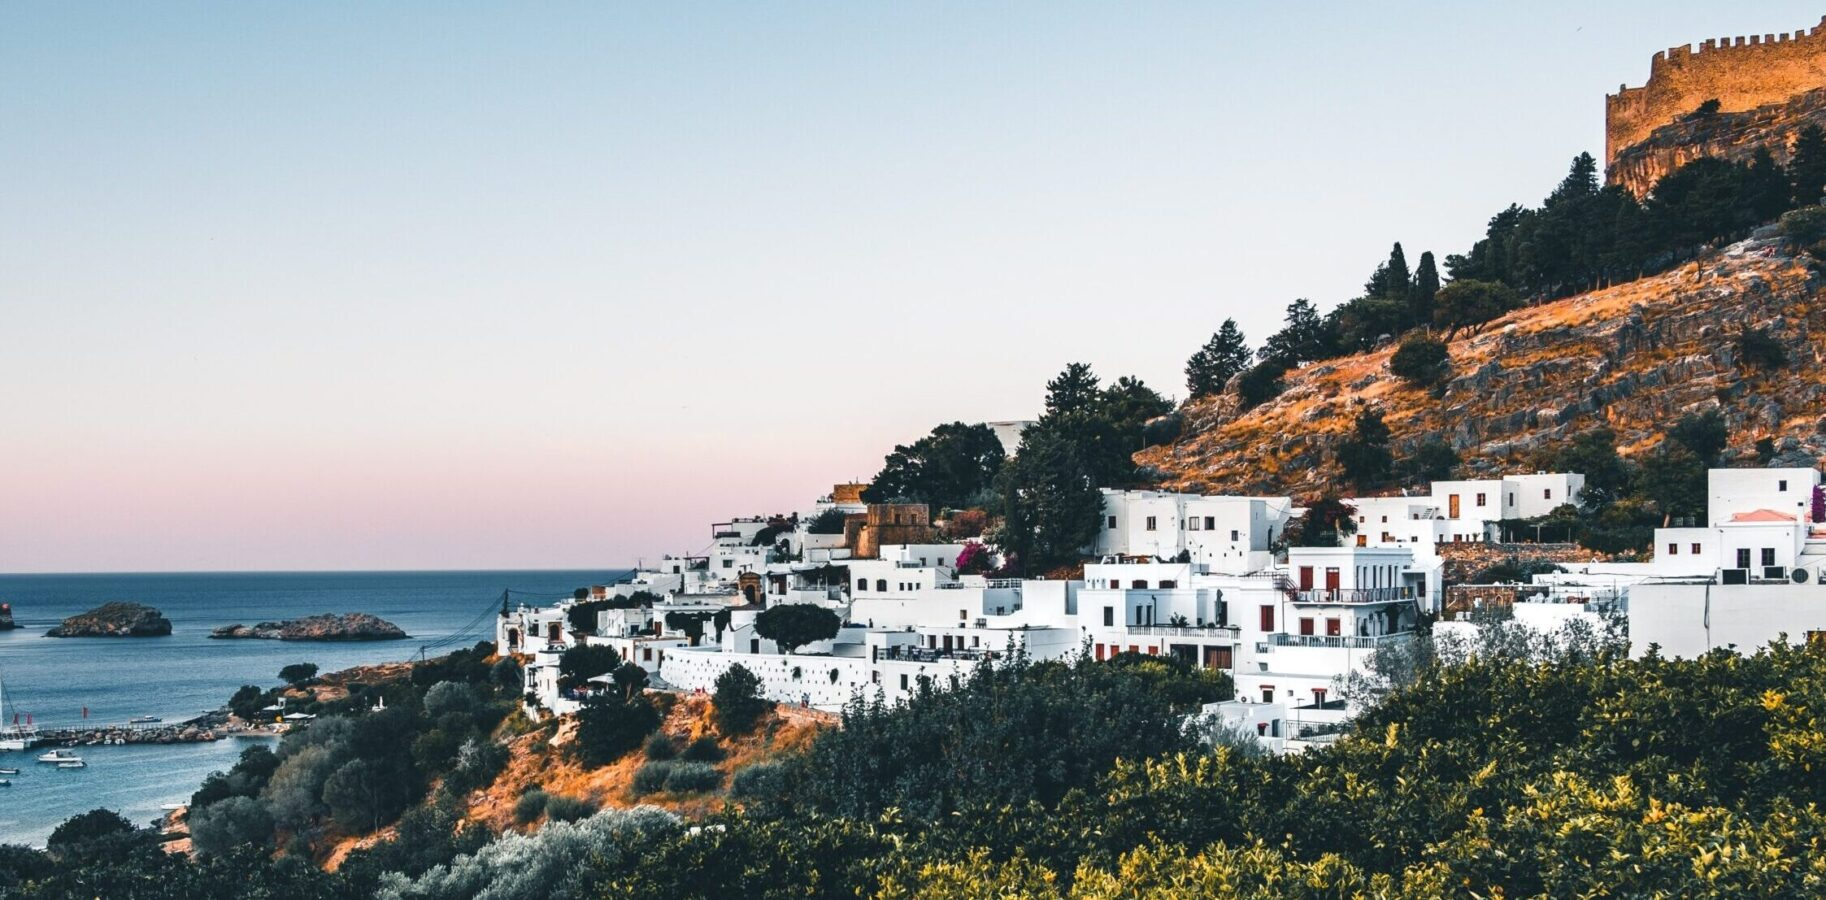 SAILING HOLIDAYS IN THE DODECANESE